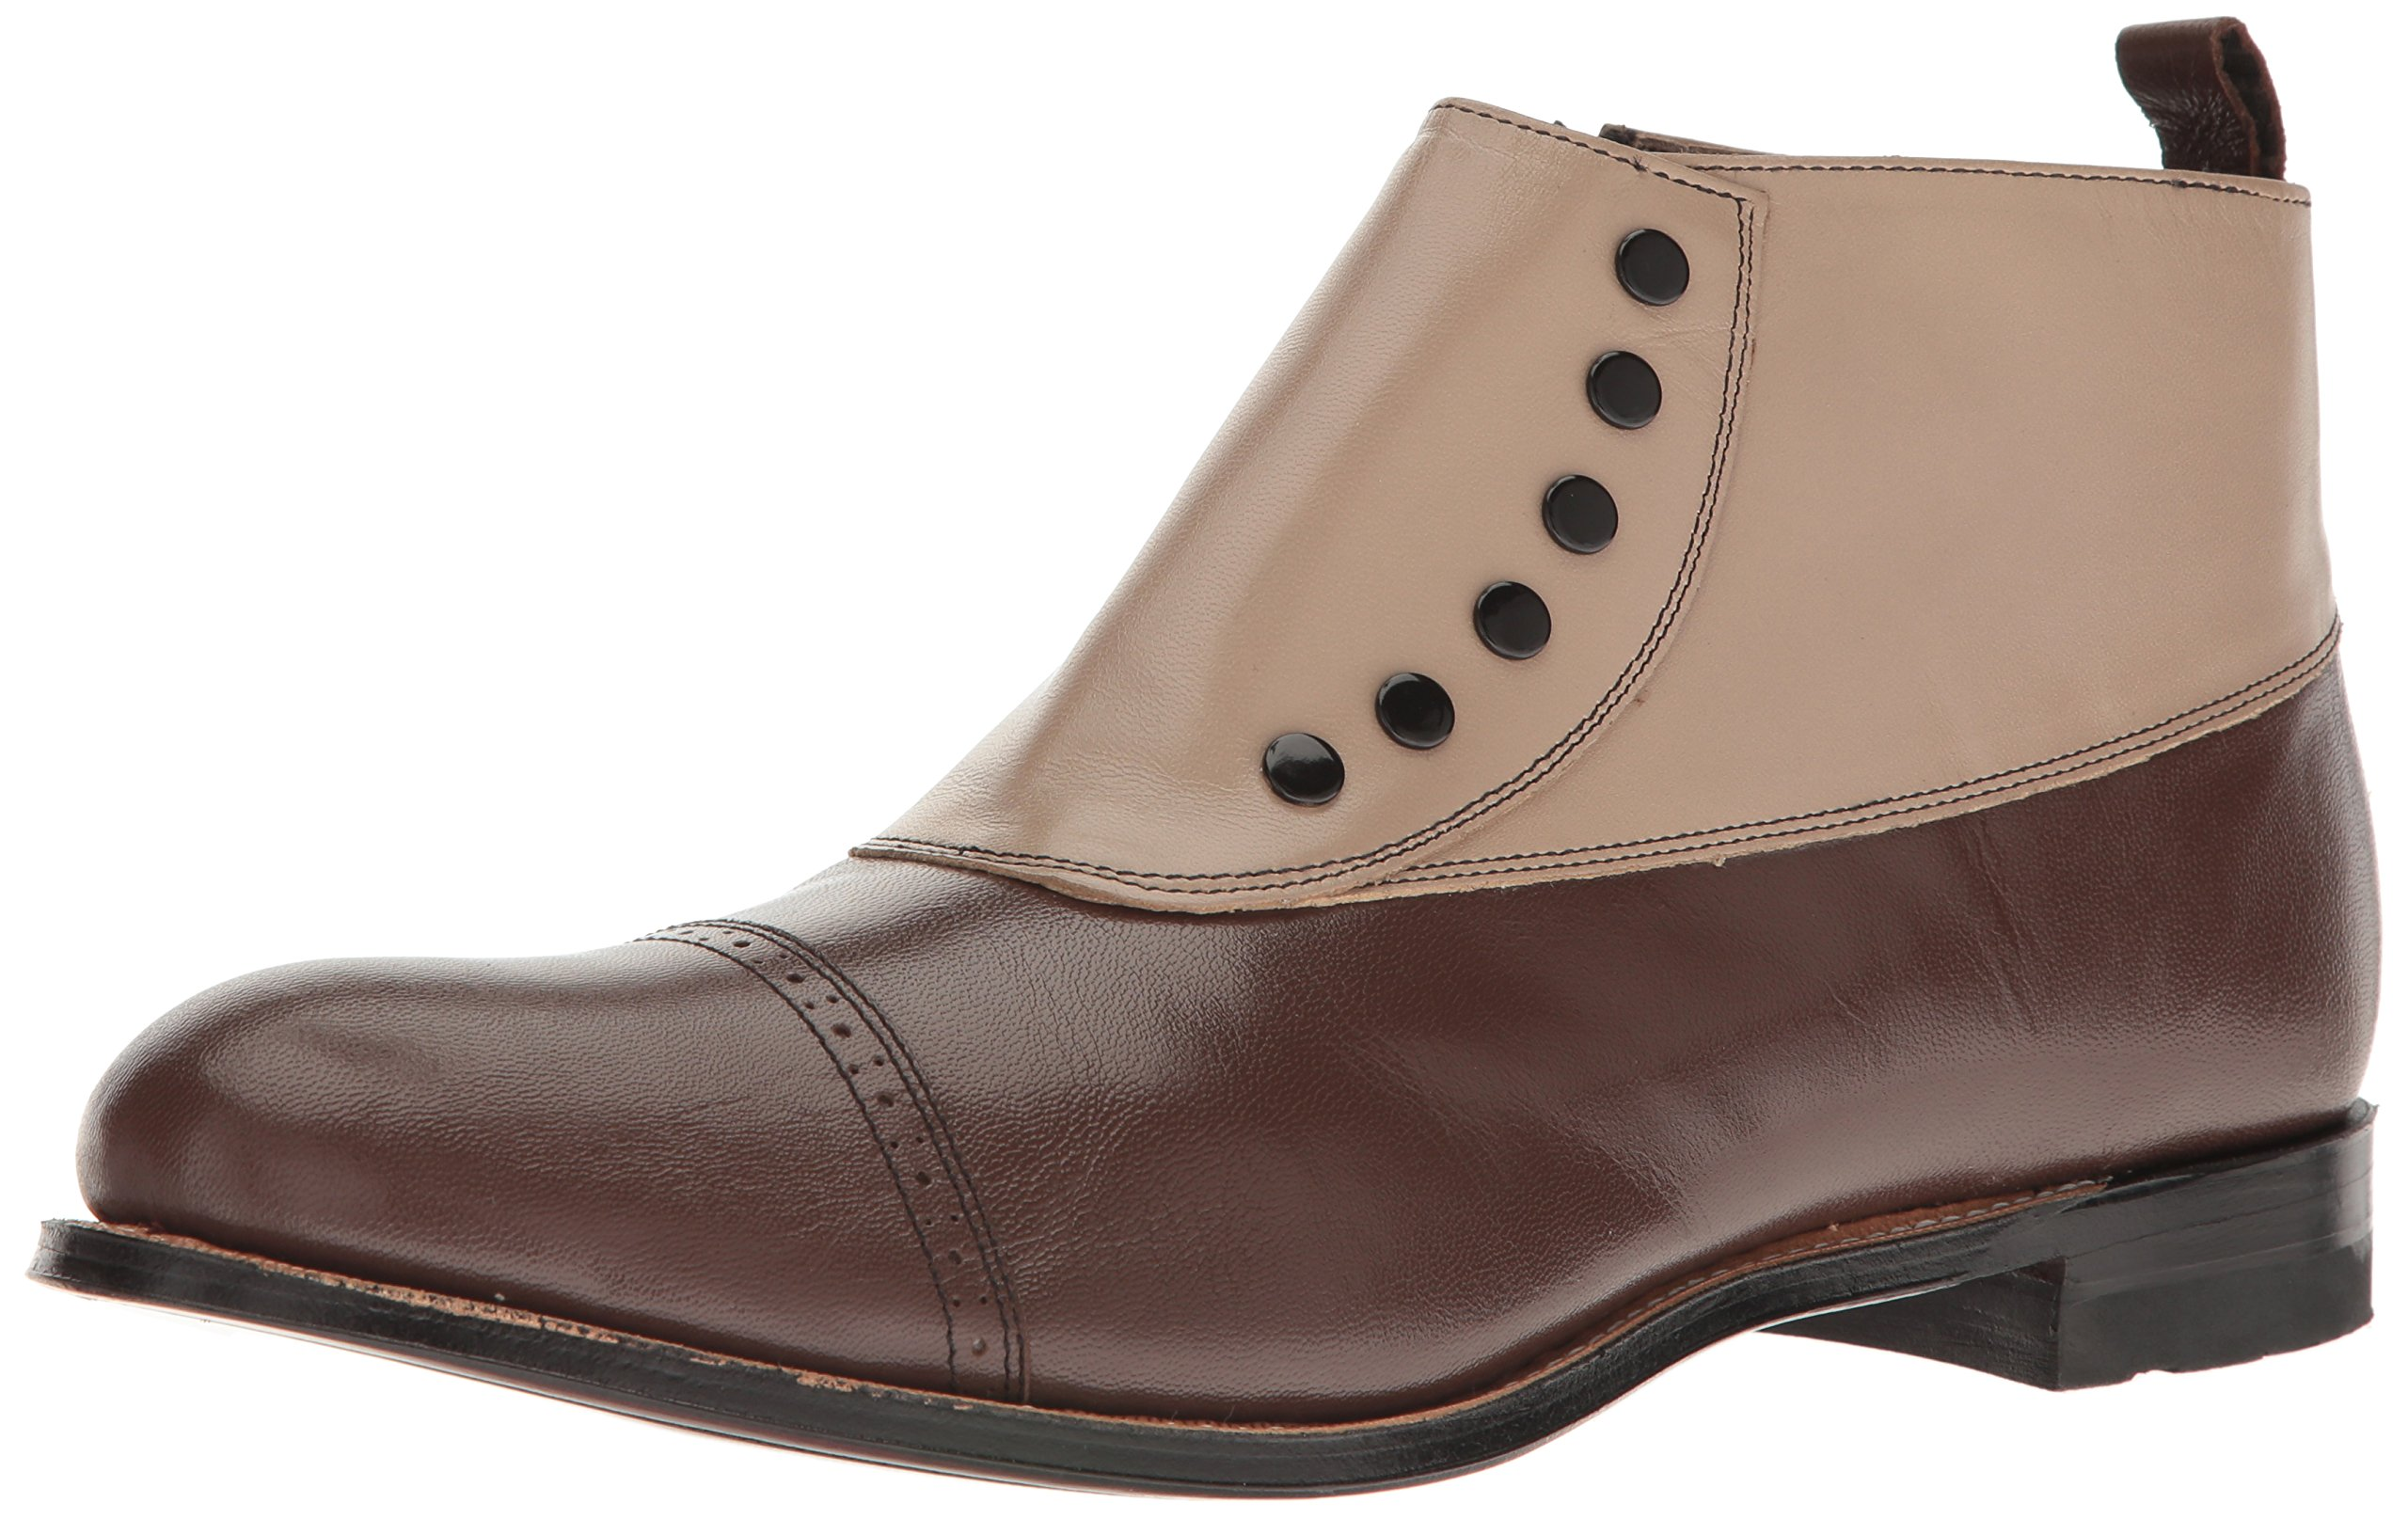 Stacy Adams Men's Madison Cap-Toe Spat Boot,Brown Multi,10 D US